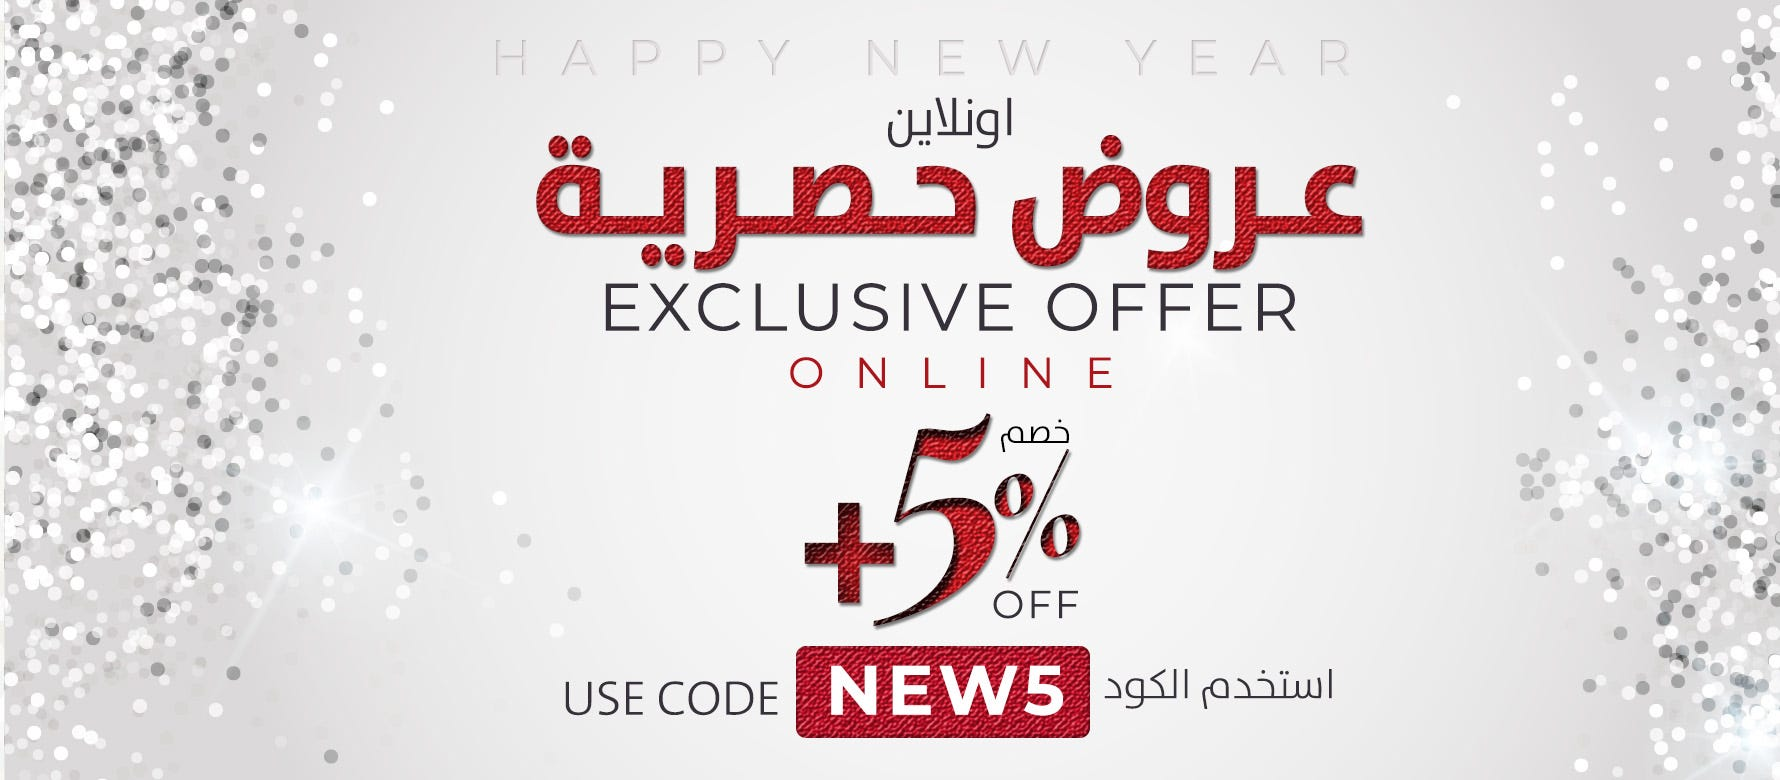 Kuwait Exclusive Offer 5% Code Eng